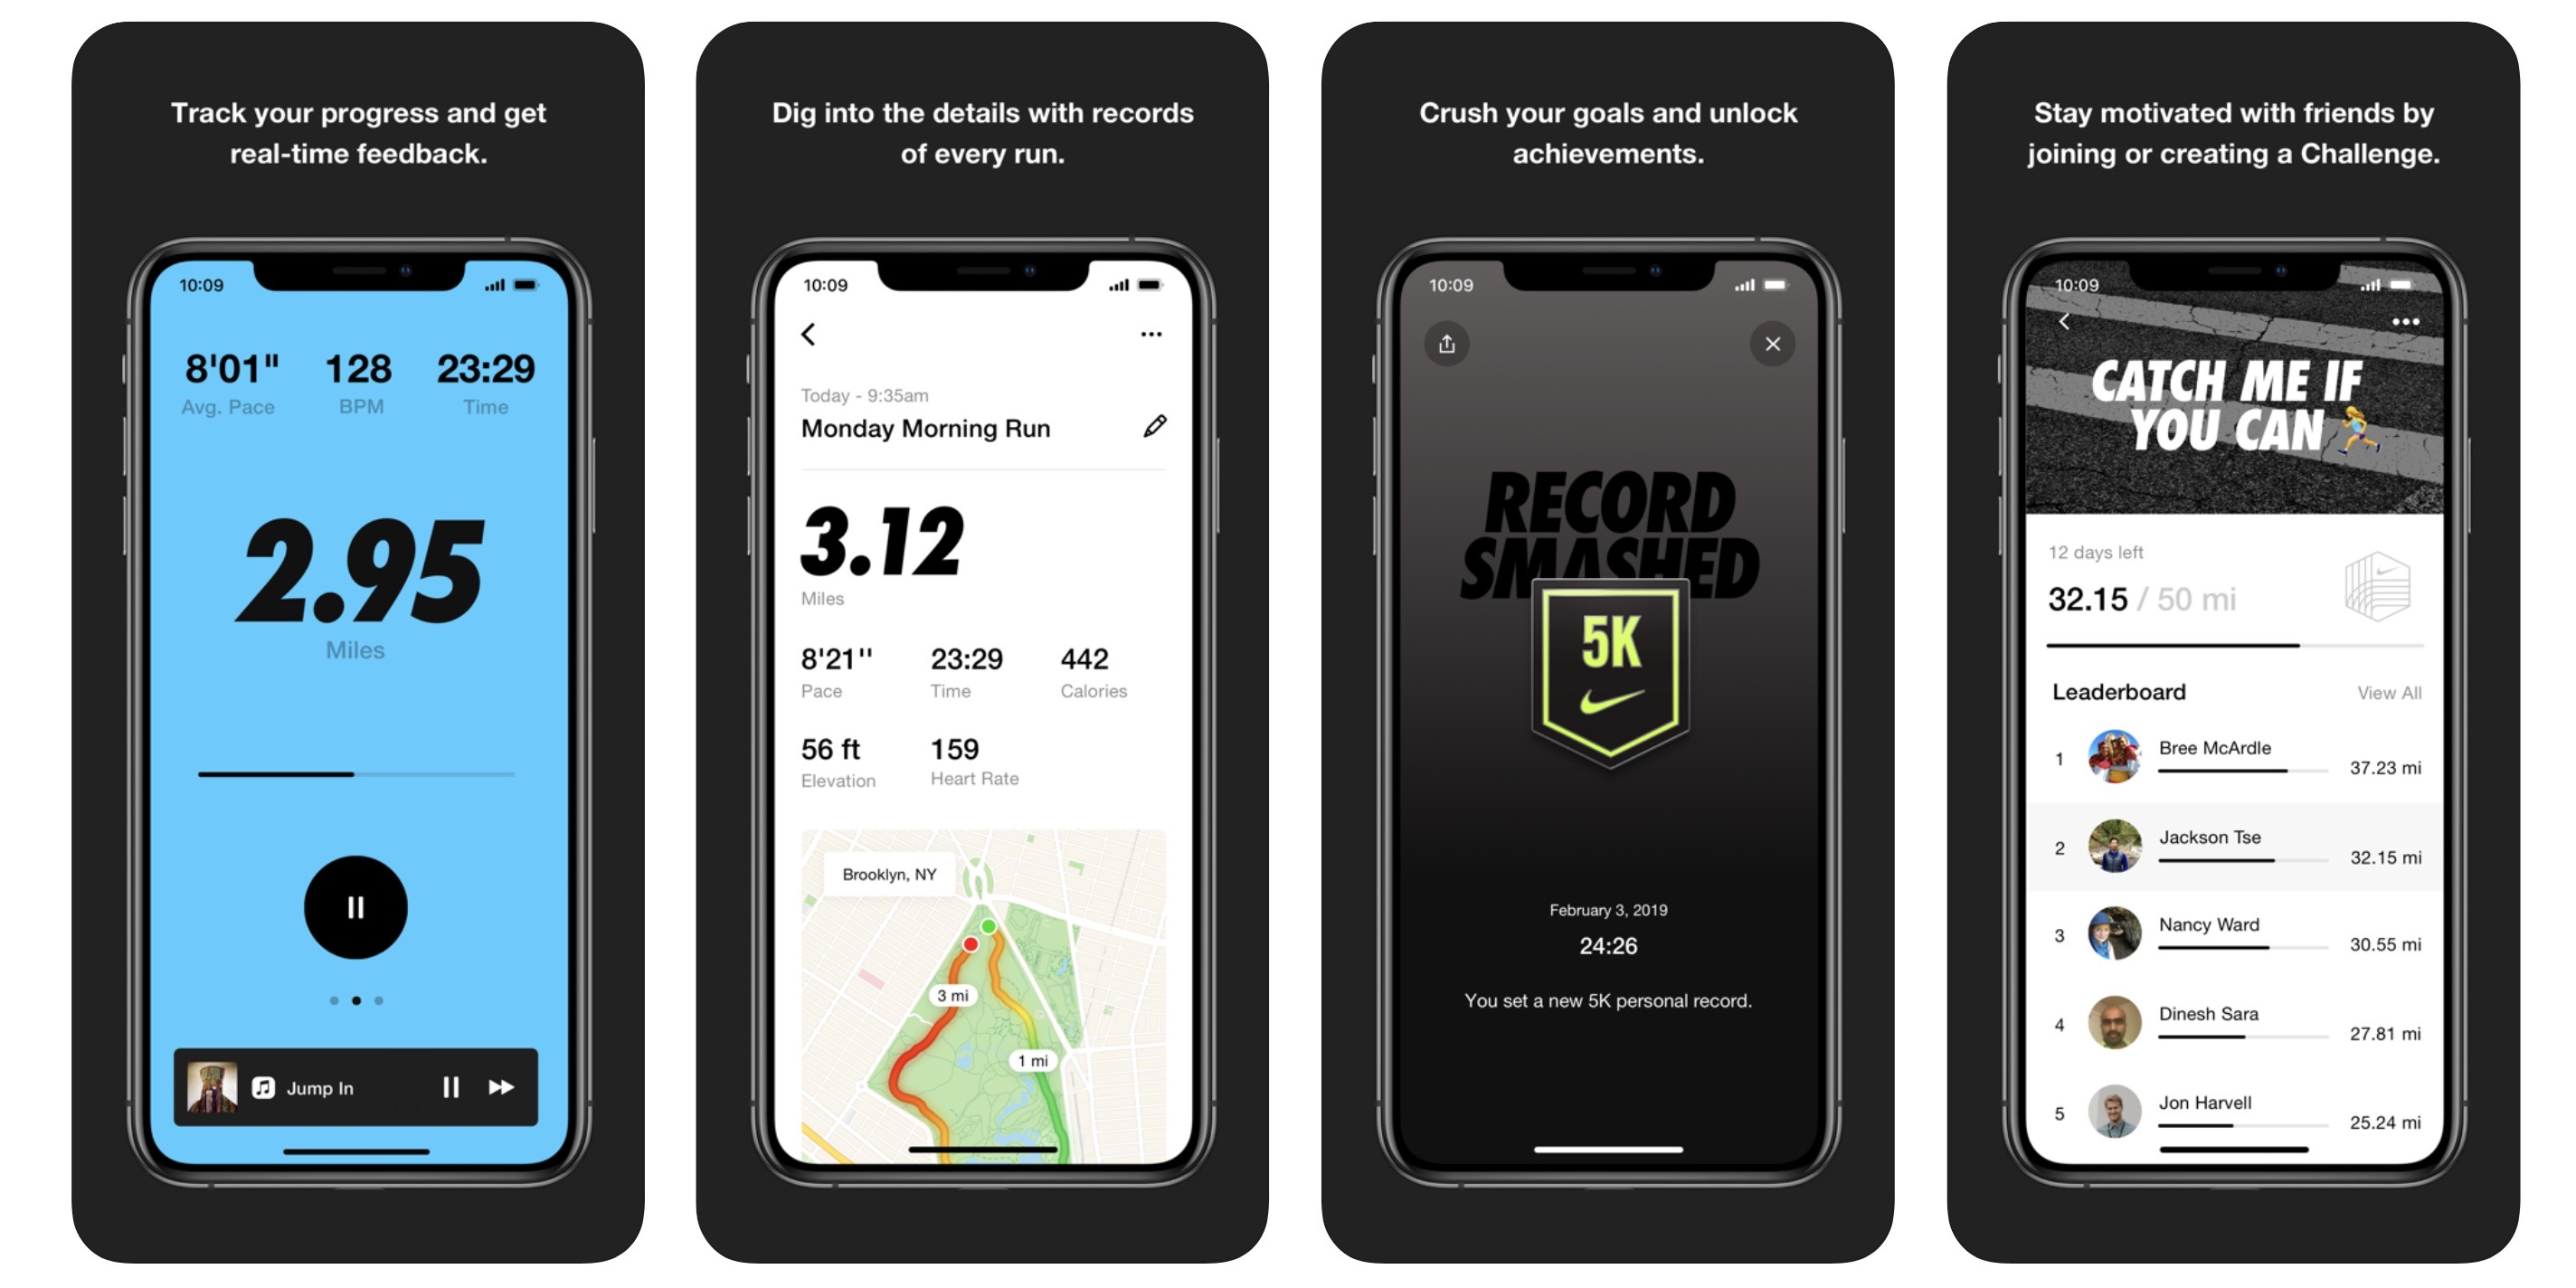 Sinceridad rodear Himno  Nike Run Club for iPhone and Apple Watch adds new post-run metrics and more  - 9to5Mac